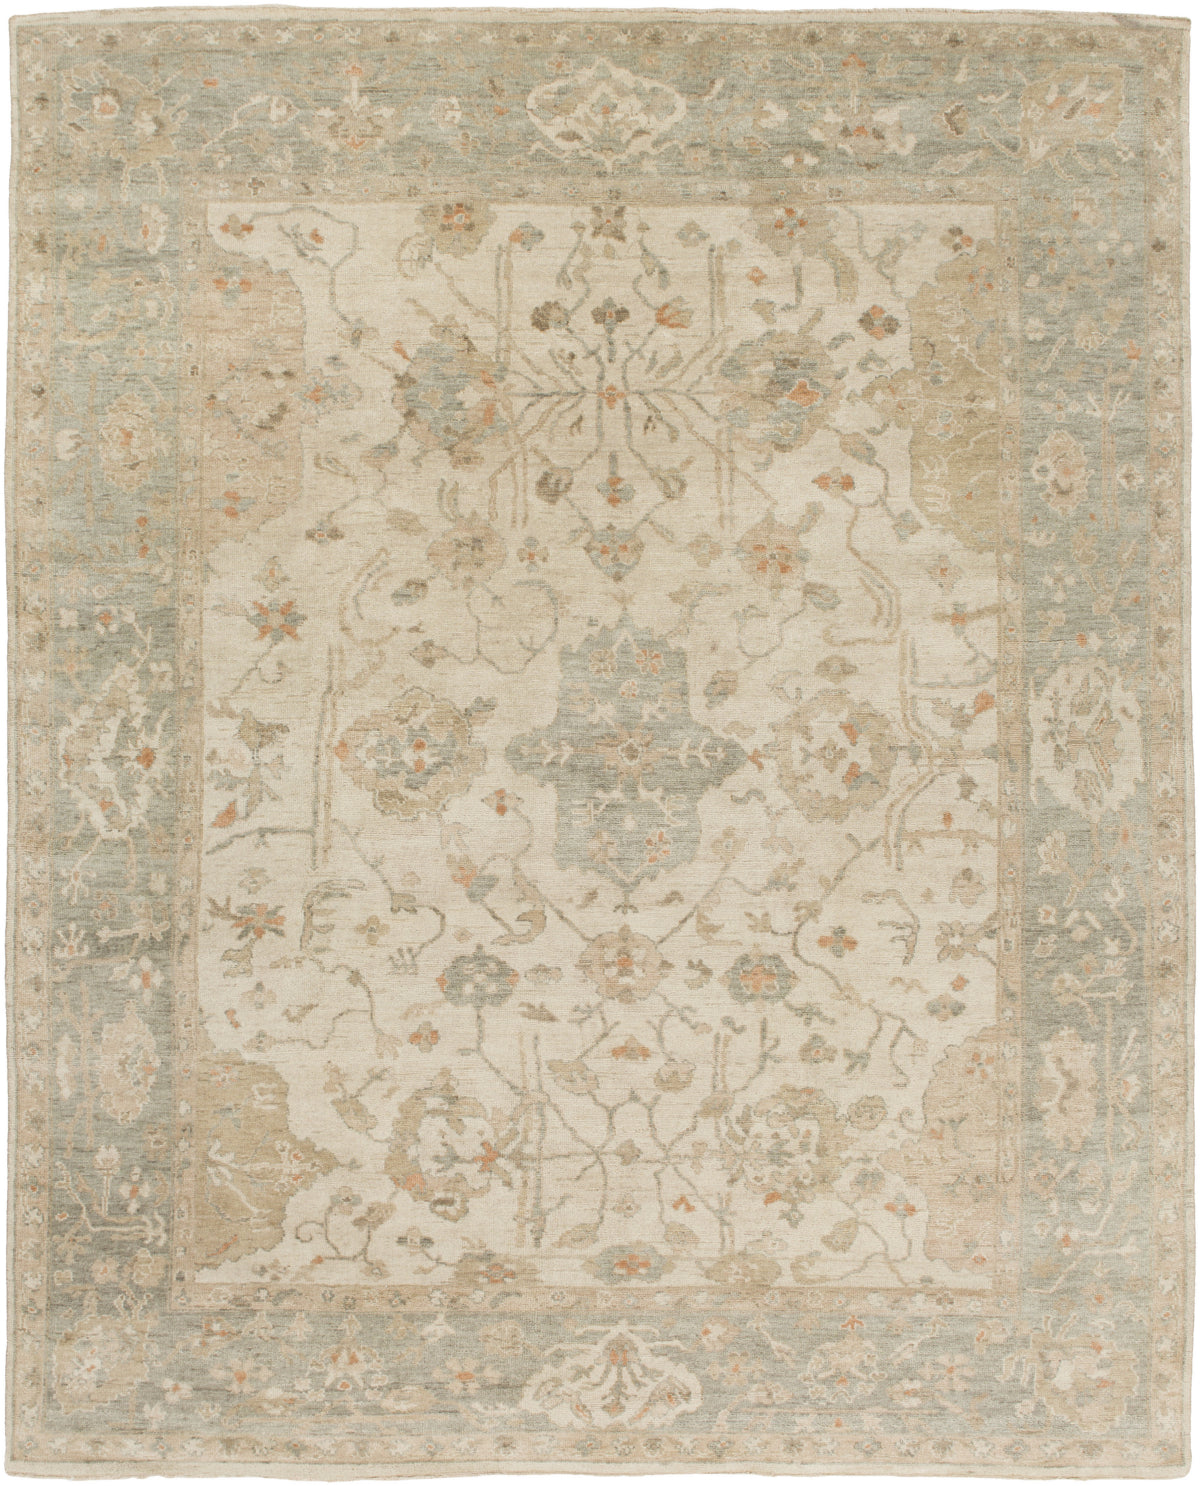 Surya Normandy NOY-8002 Area Rug main image